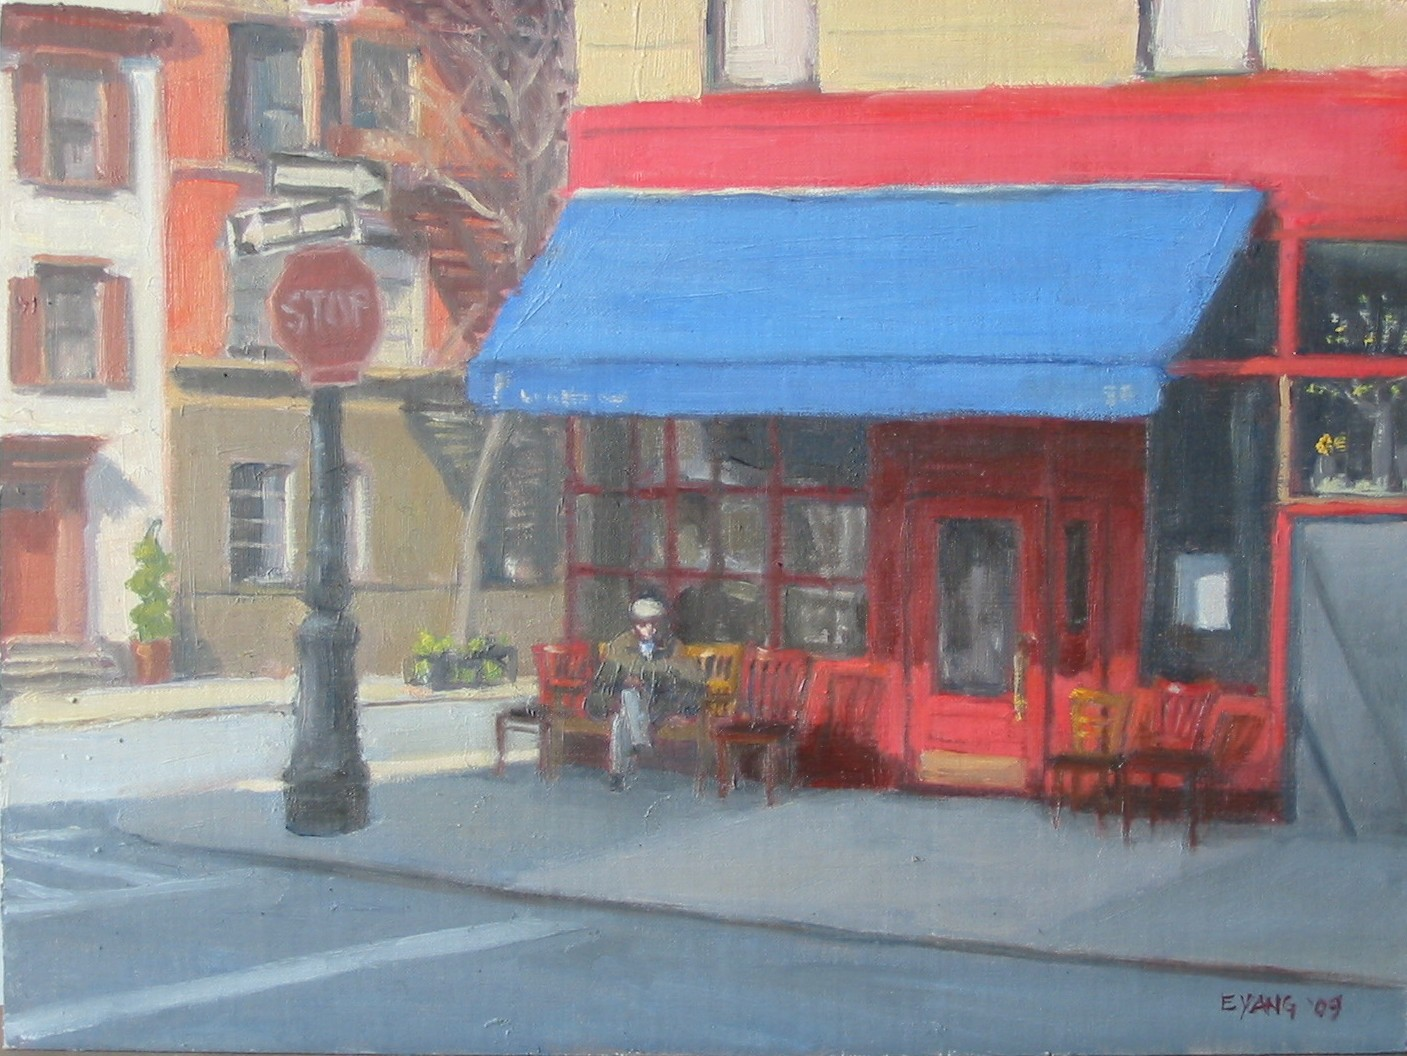 Little Owl Cafe, Greenwich Village, oil on panel, 9 x 12 in.